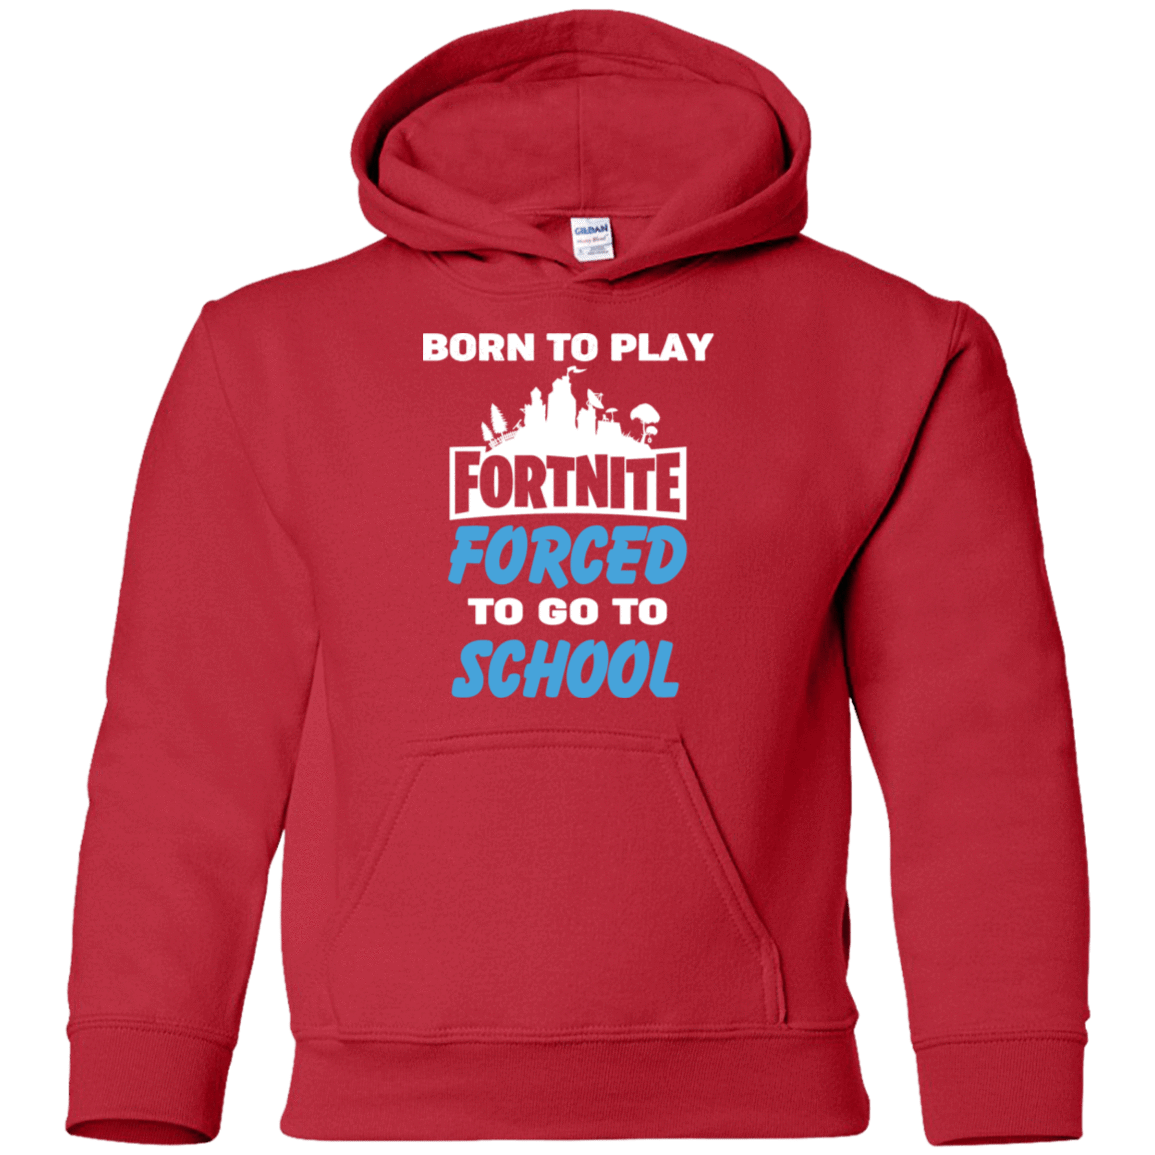 Born To Play Fortnite Forced To Go To School 59-331-74332978-1258 - Tee Ript